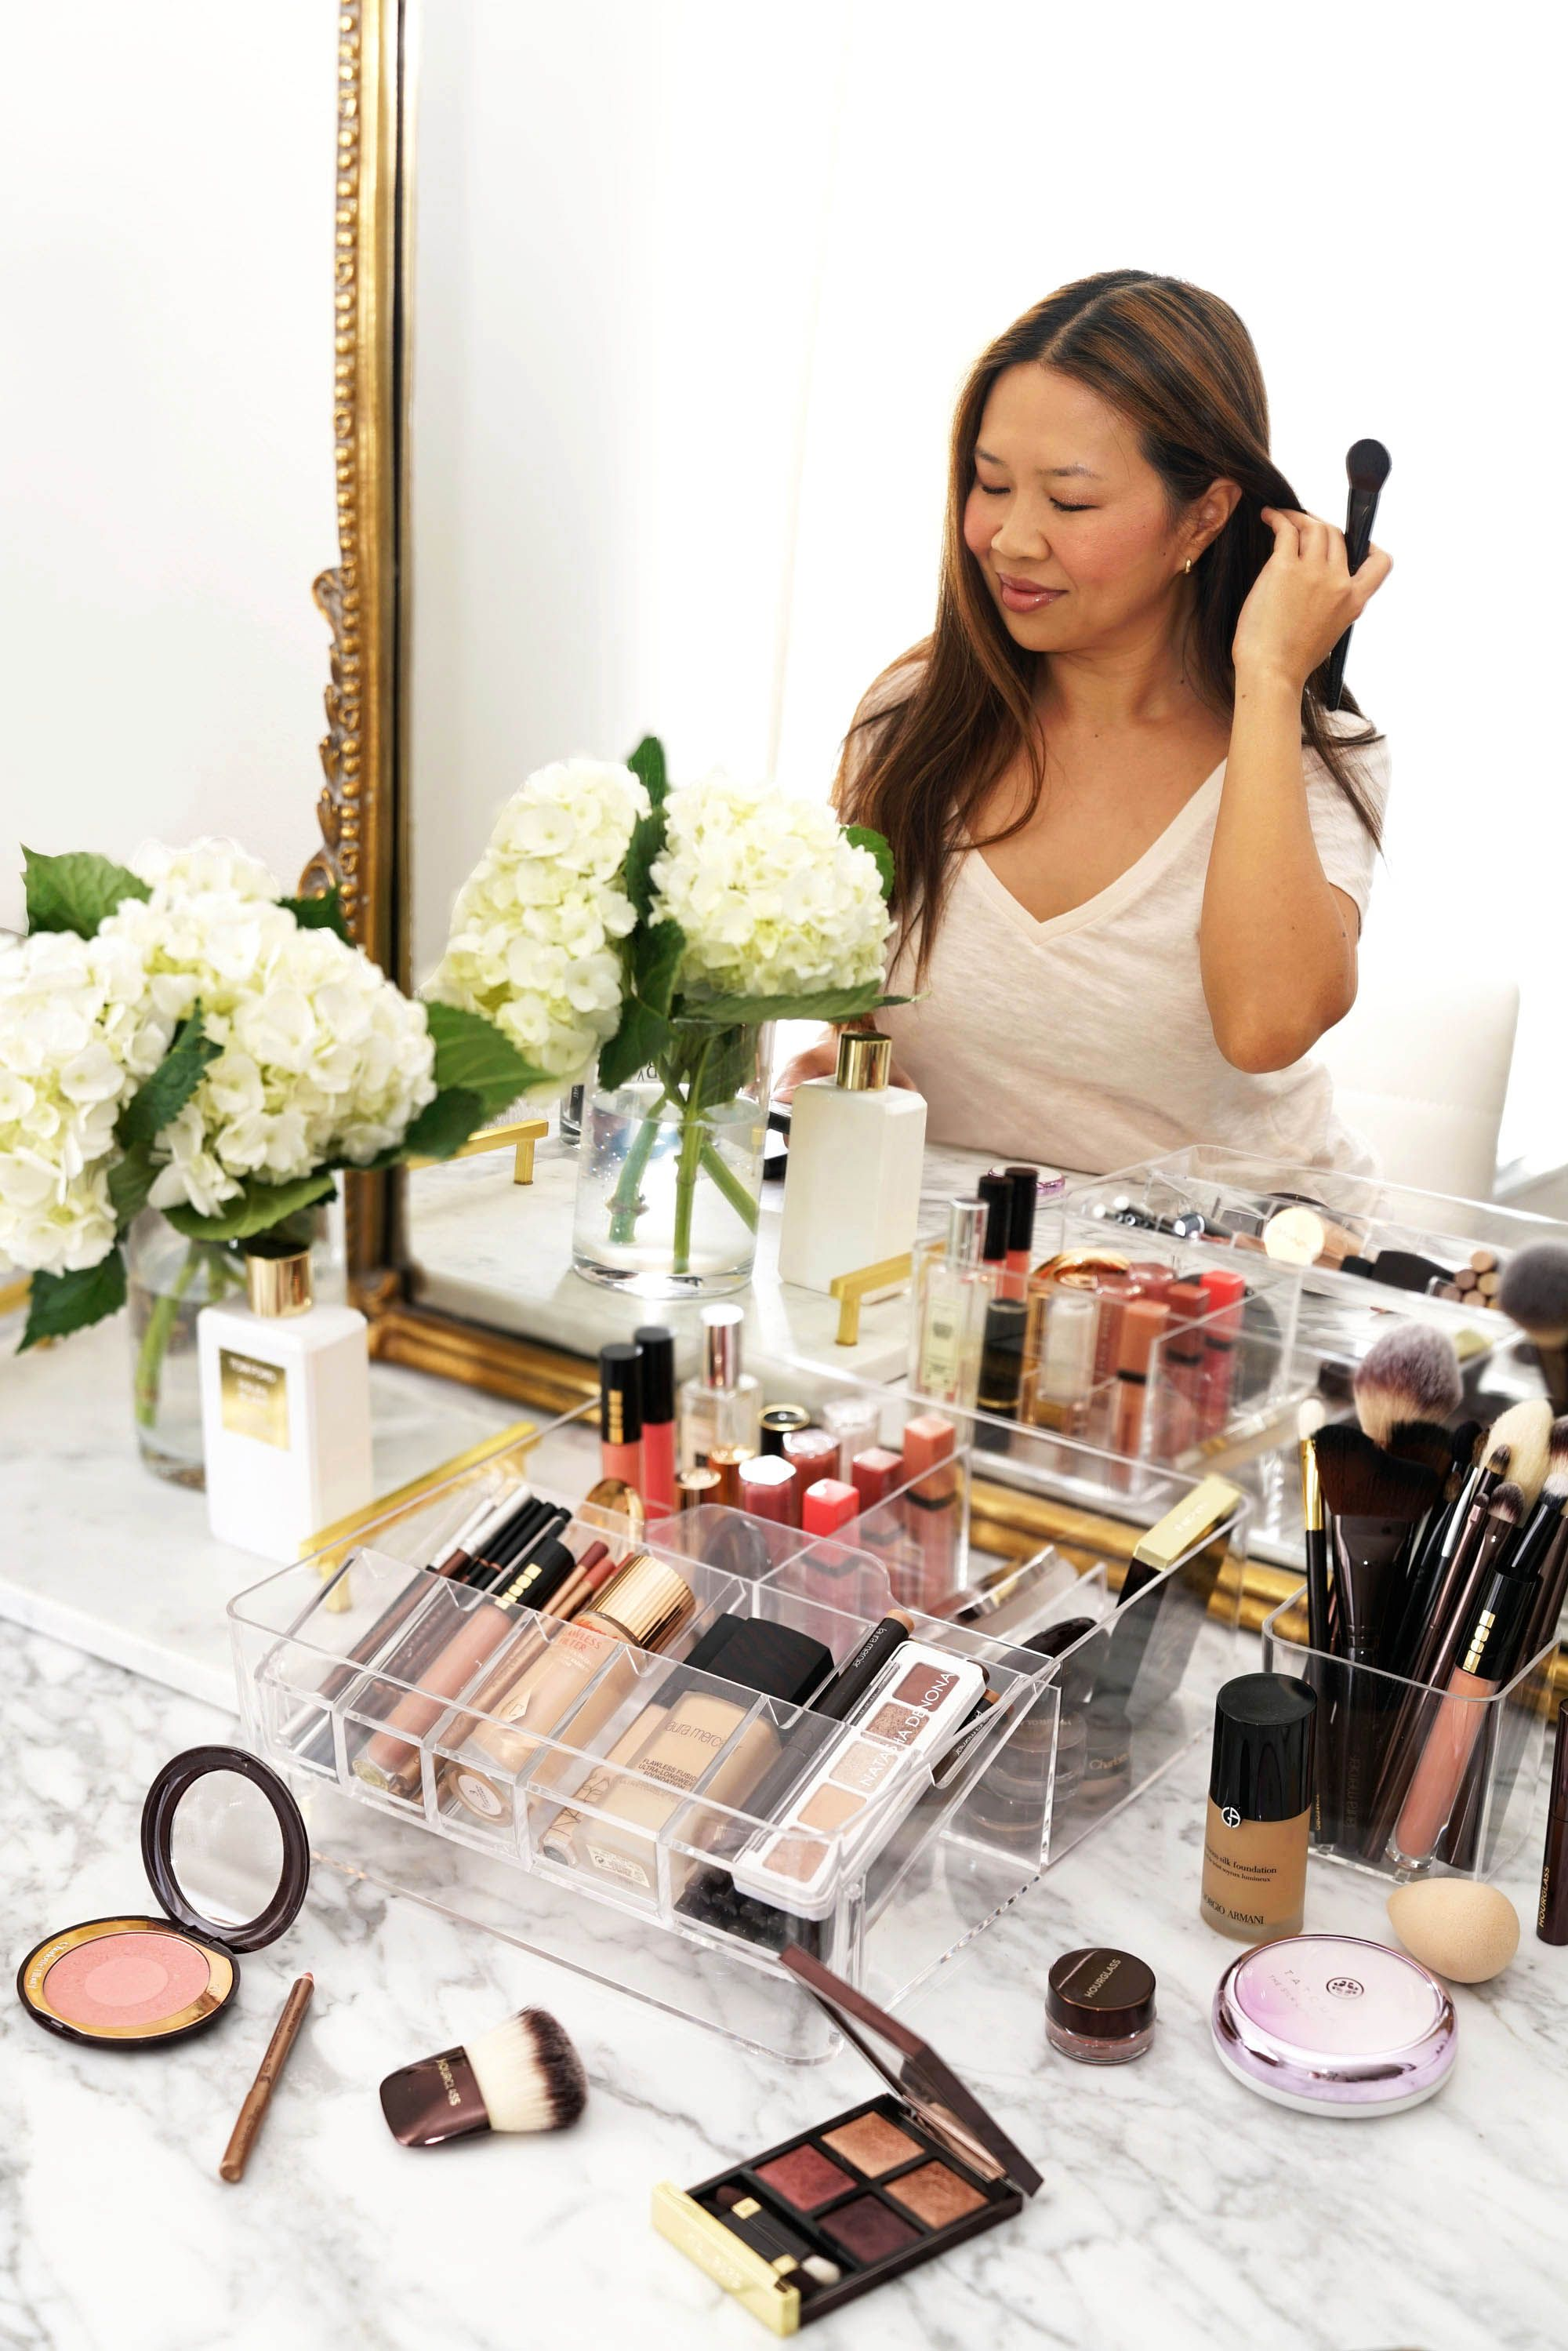 Top 25 Makeup MustHaves in My Weekly Beauty Routine From